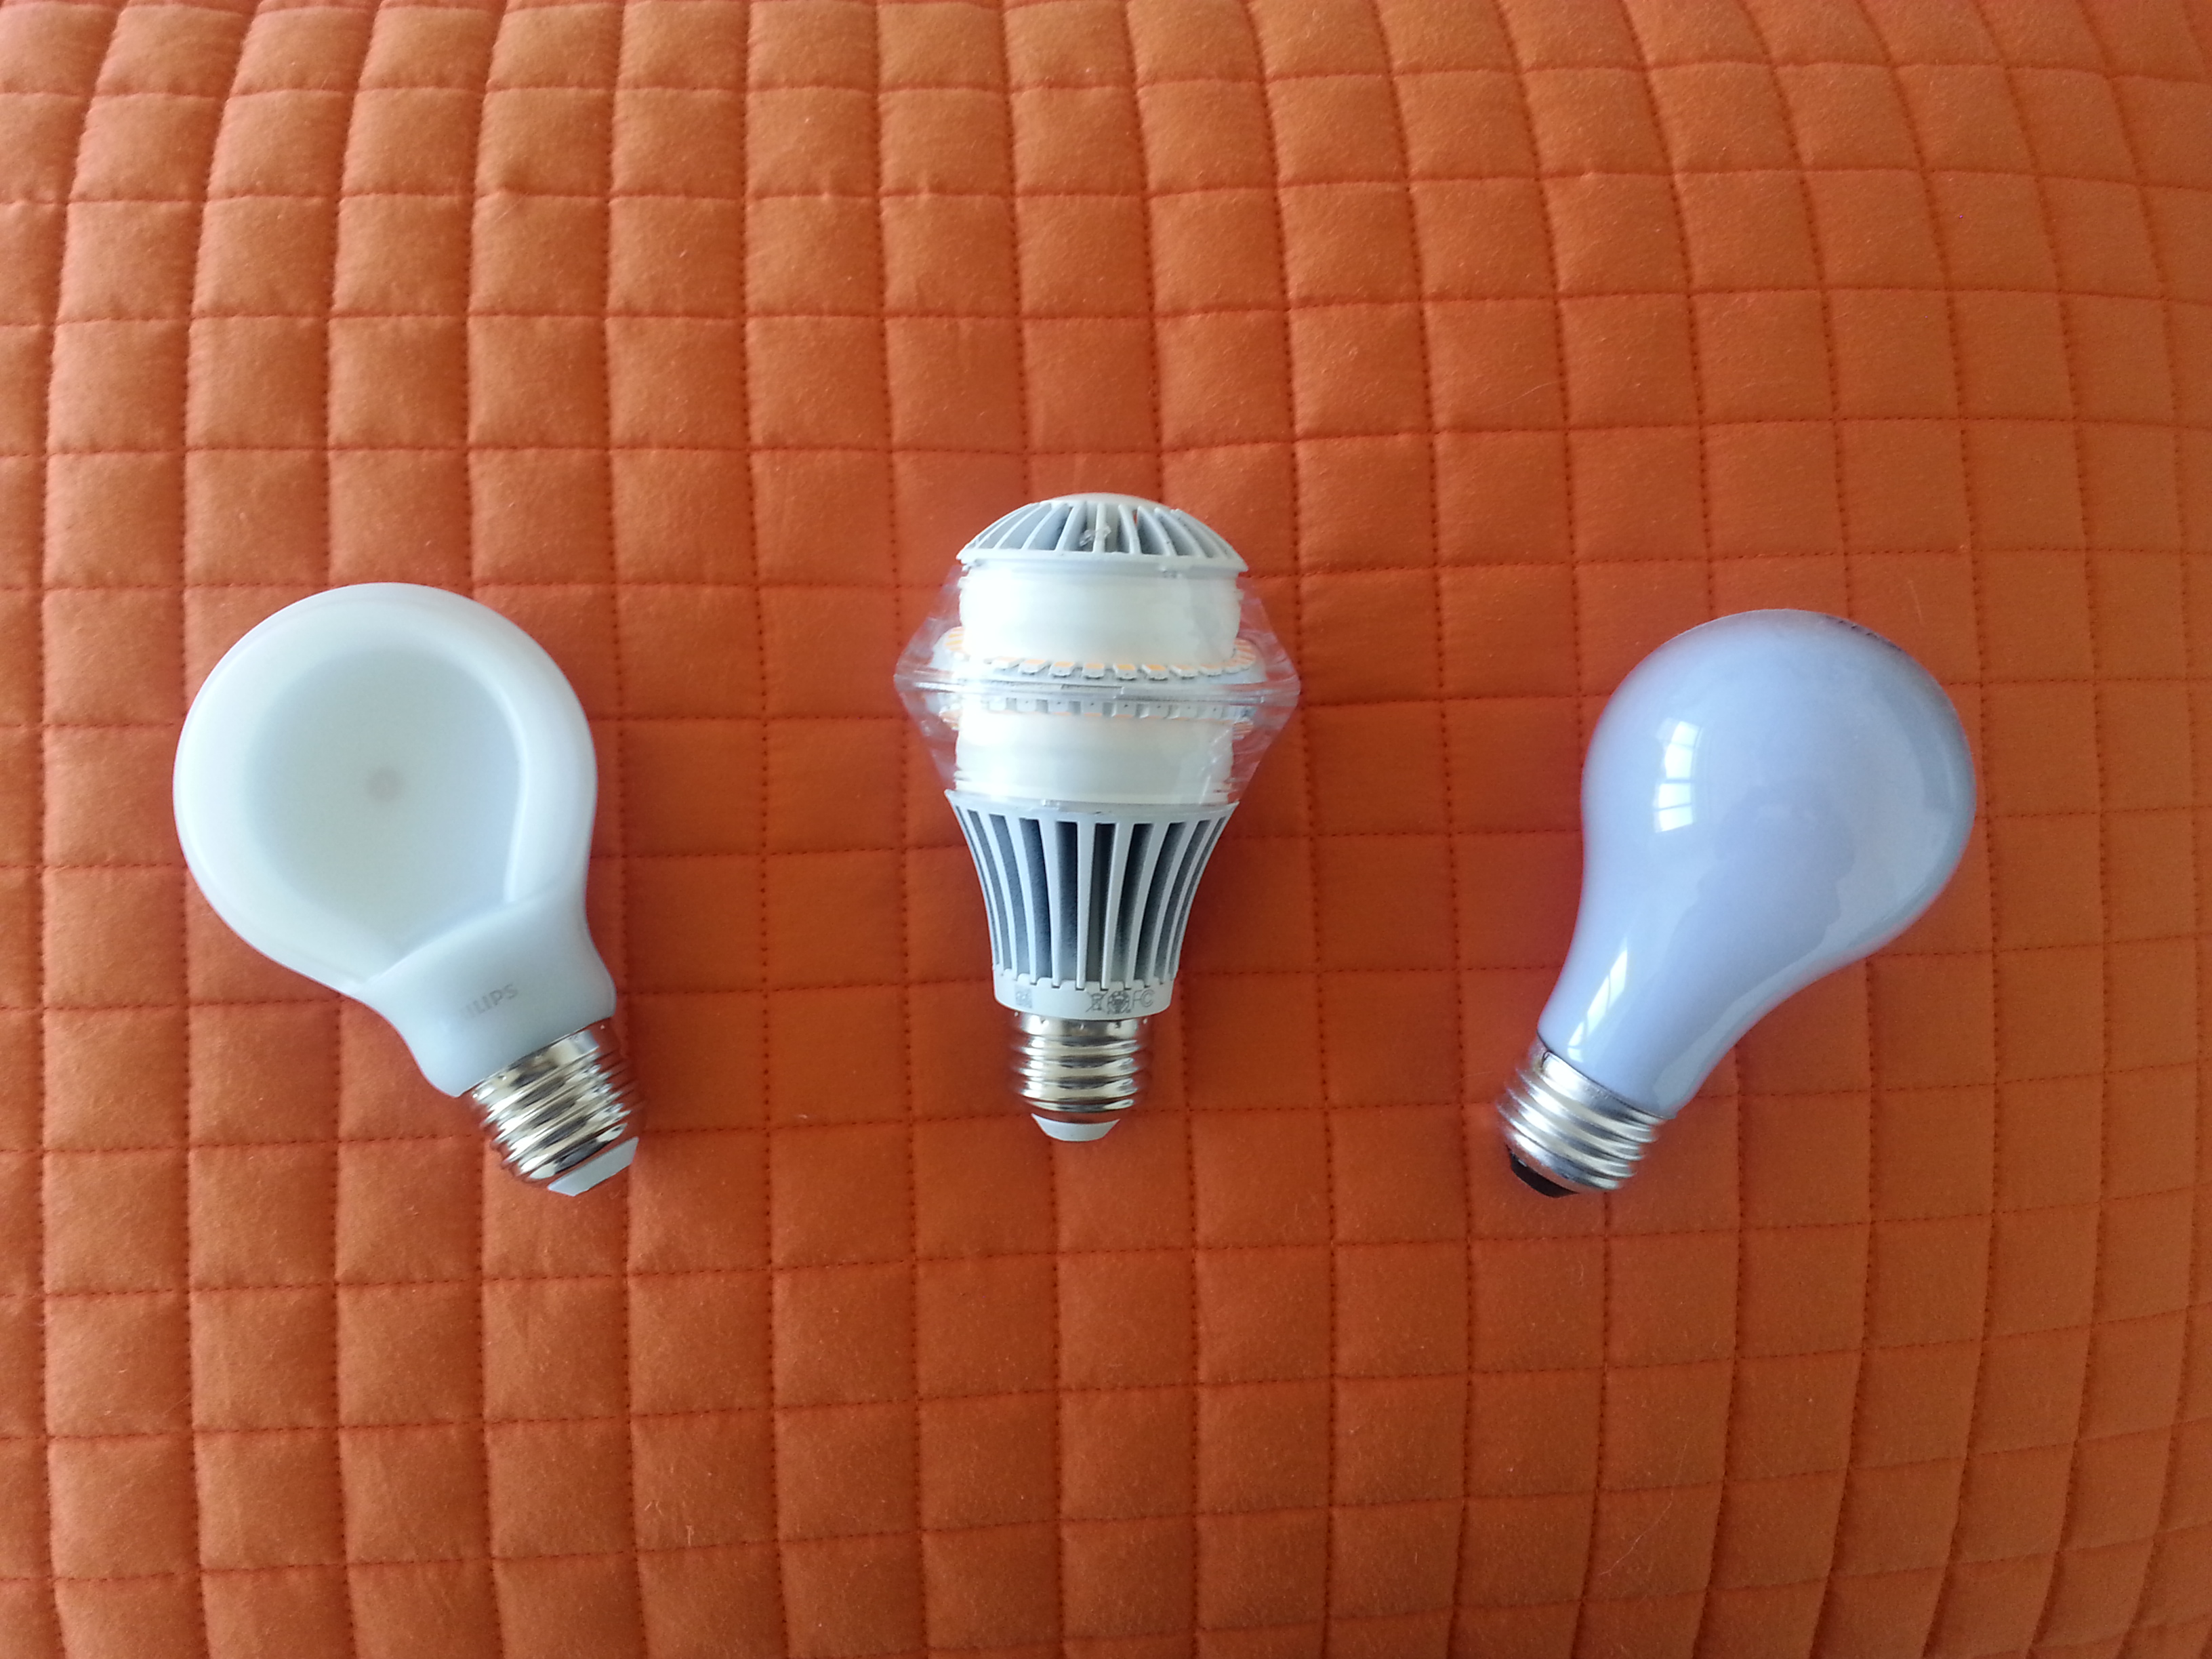 From left to right: The Philips SlimStyle, an LED with heat sink and a traditional 60-watt bulb.